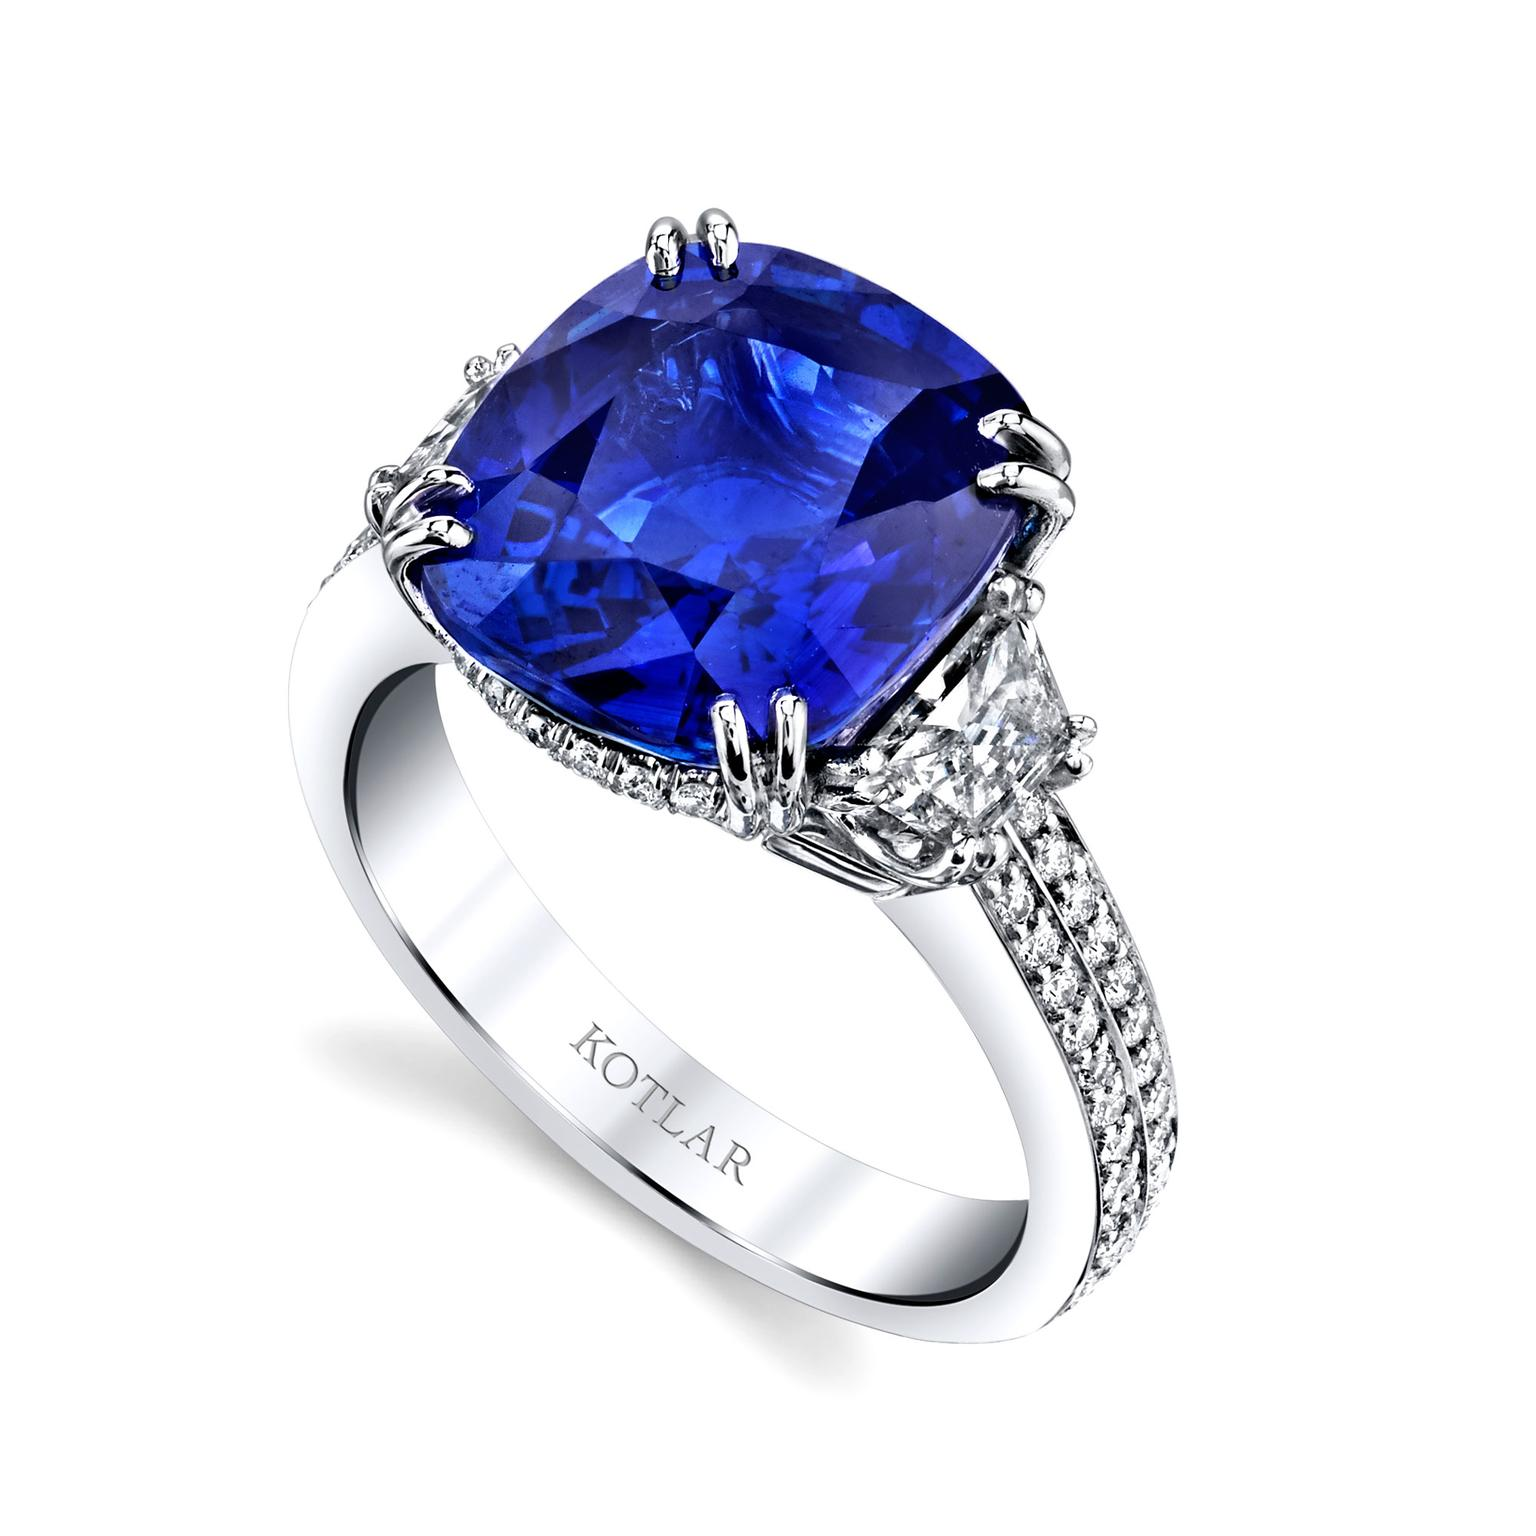 ceylon blue sapphire engagement ring david morris the jewellery editor. Black Bedroom Furniture Sets. Home Design Ideas